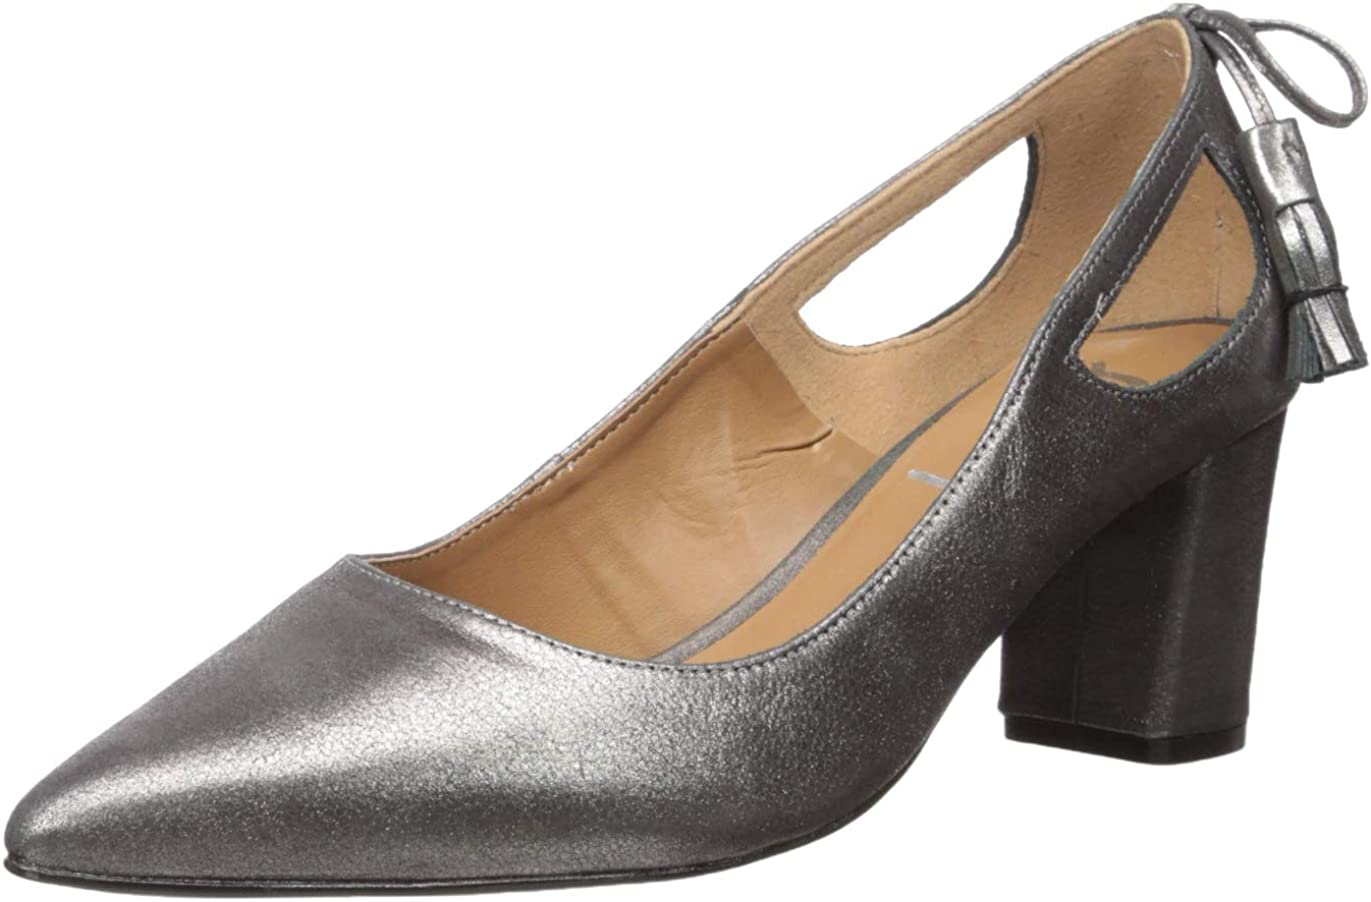 French Sole FS NY Pump Courtney Sales of SALE Sale special price items from new works Women's